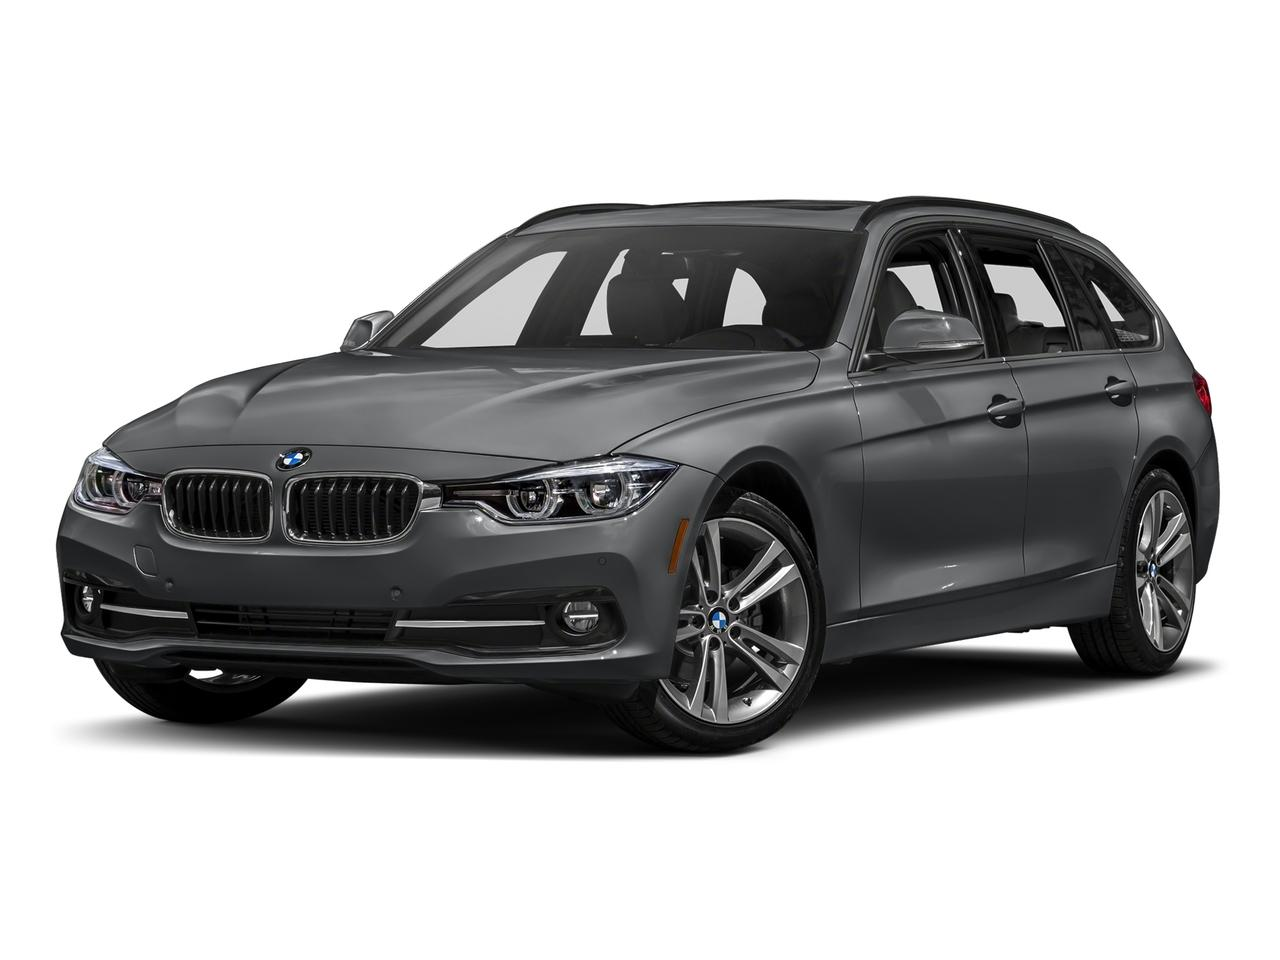 2017 BMW 328d xDrive Vehicle Photo in Spokane, WA 99207